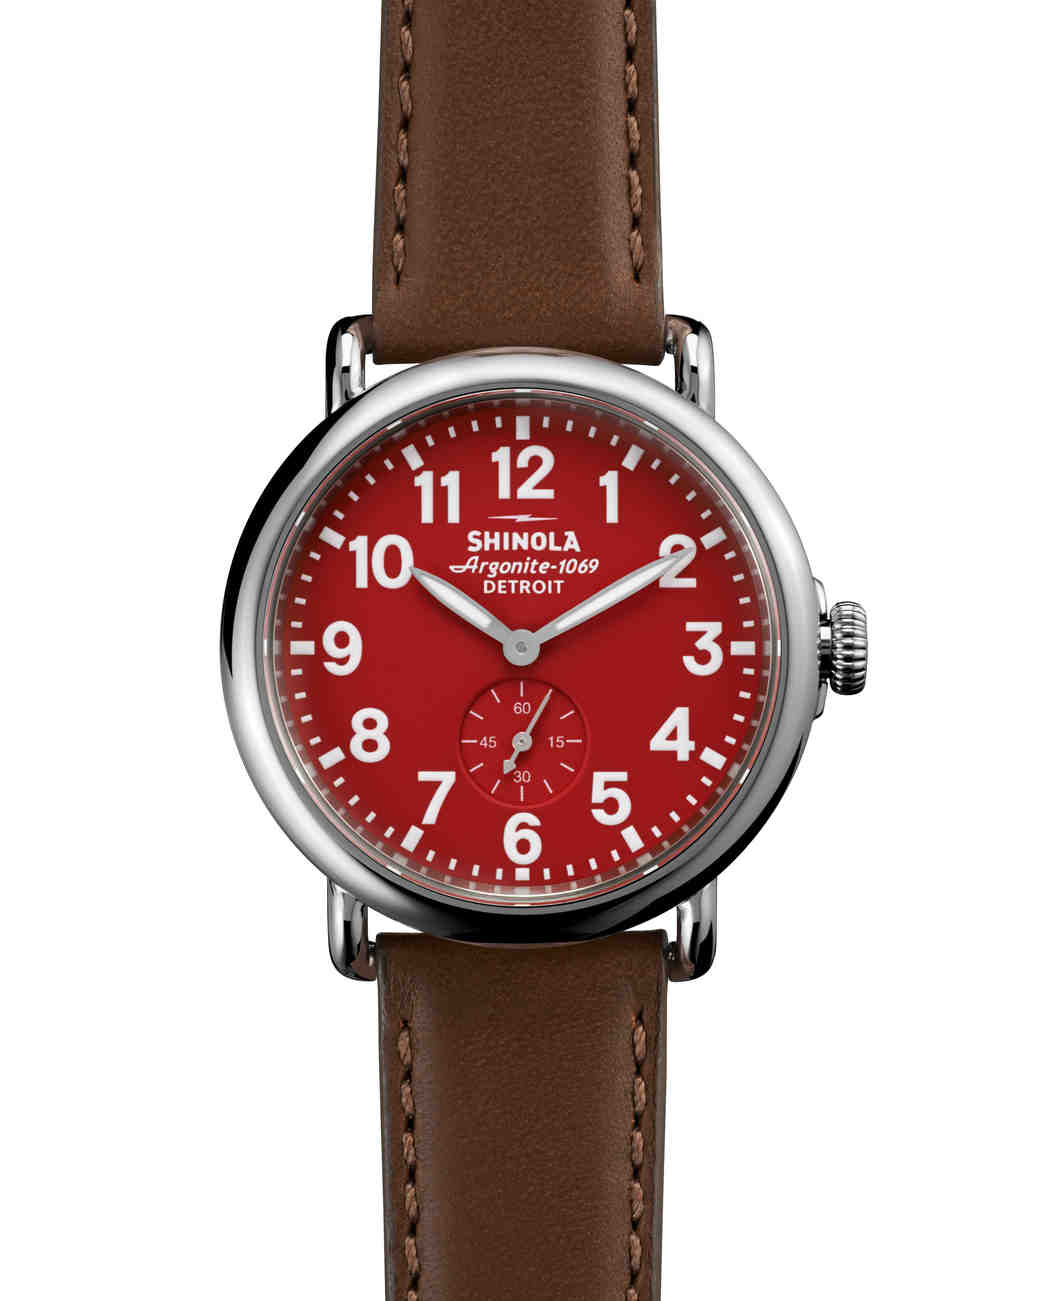 valentines-day-gift-guide-him-shinola-watch-0115.jpg